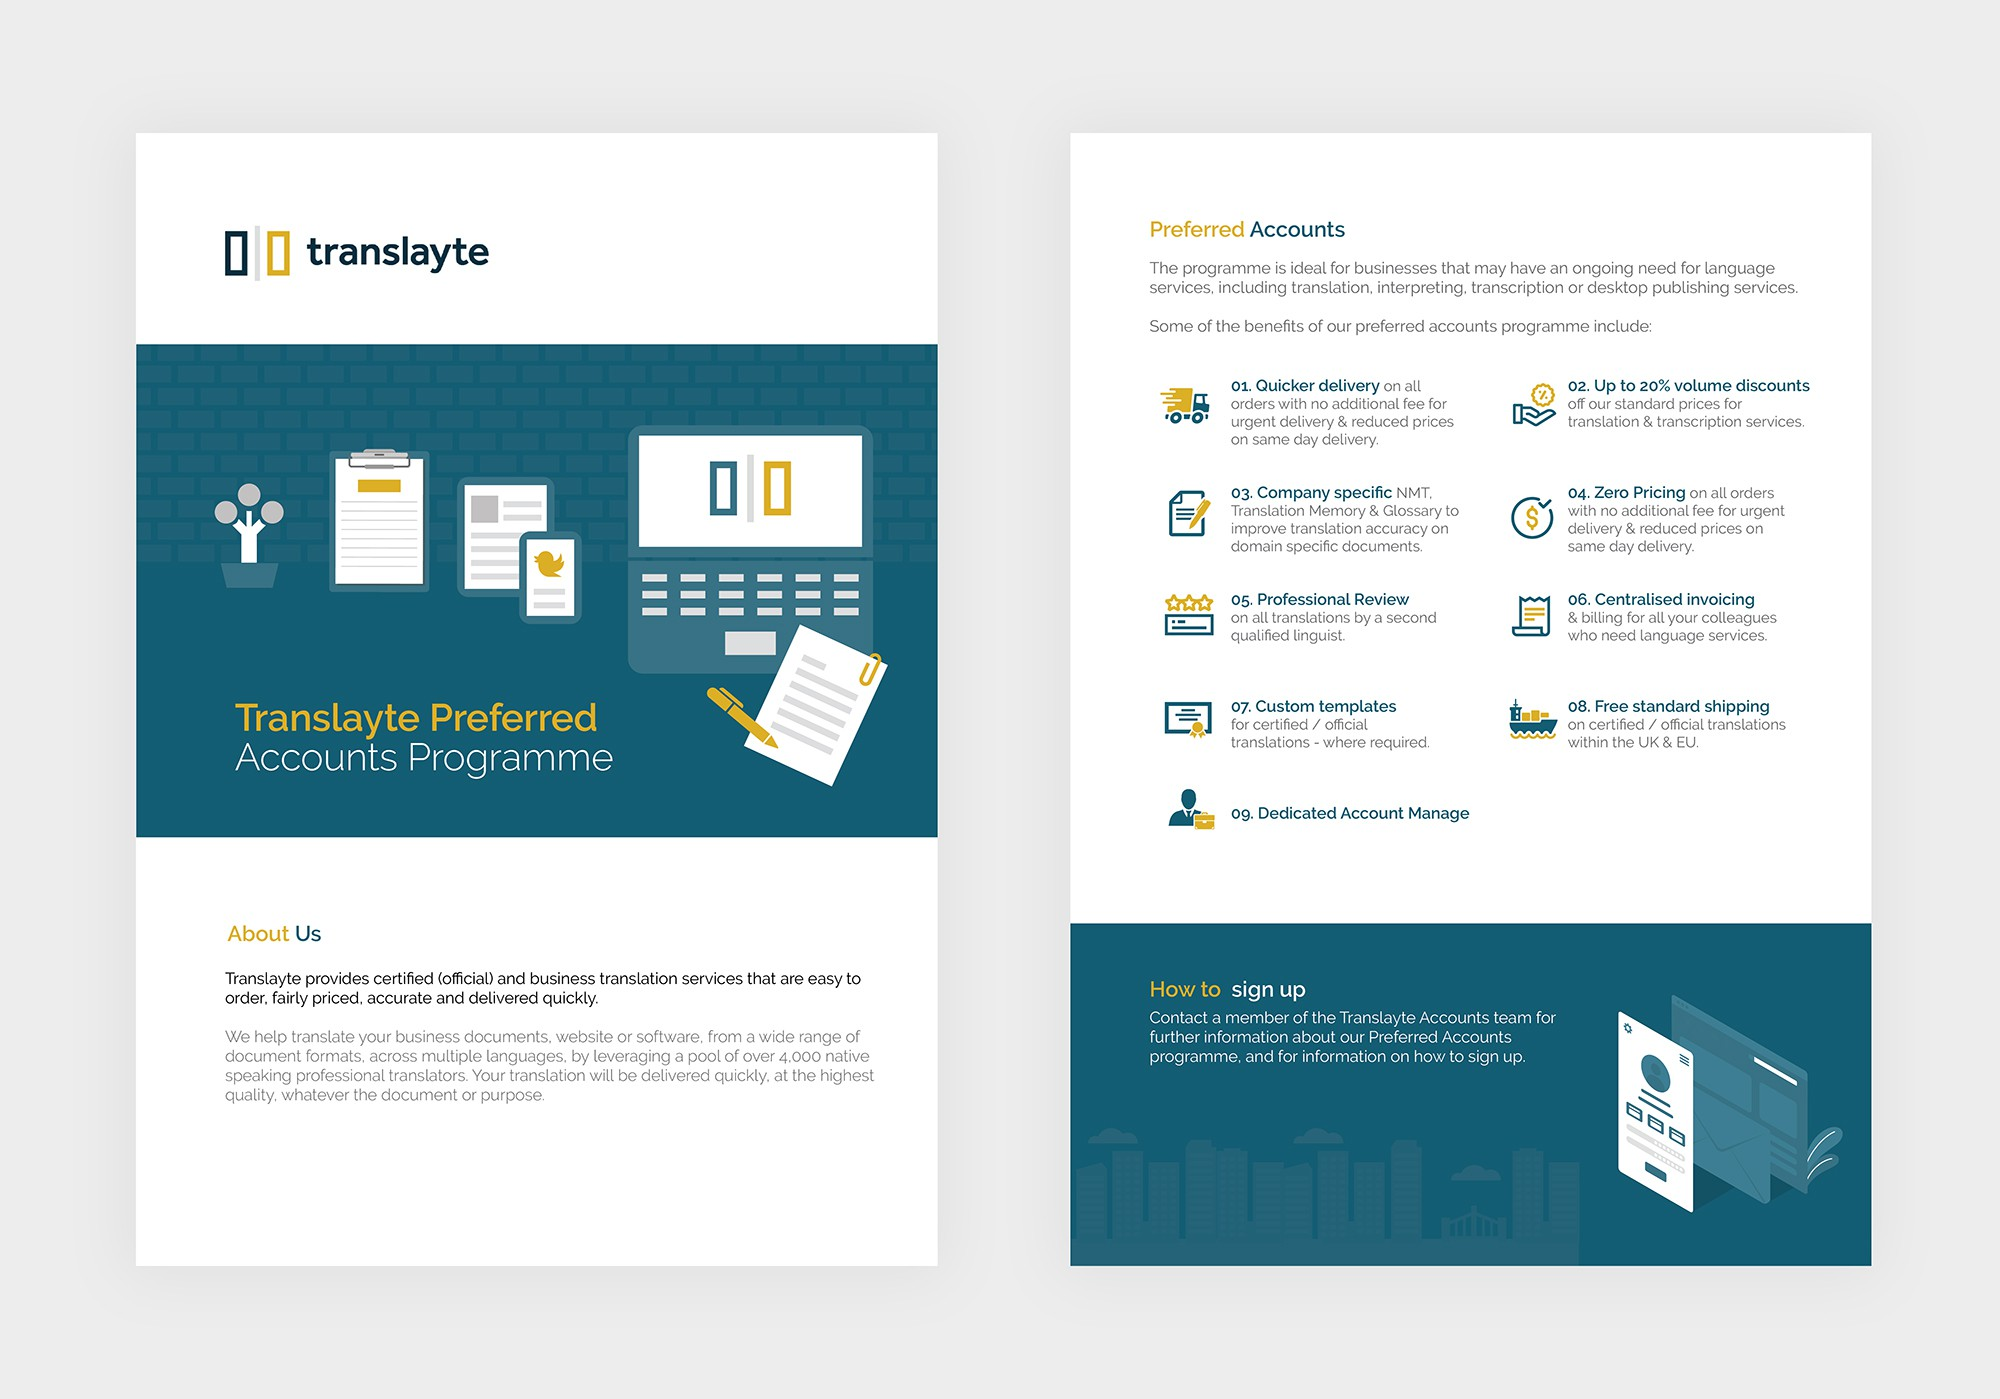 Translayte Preferred Account brochure